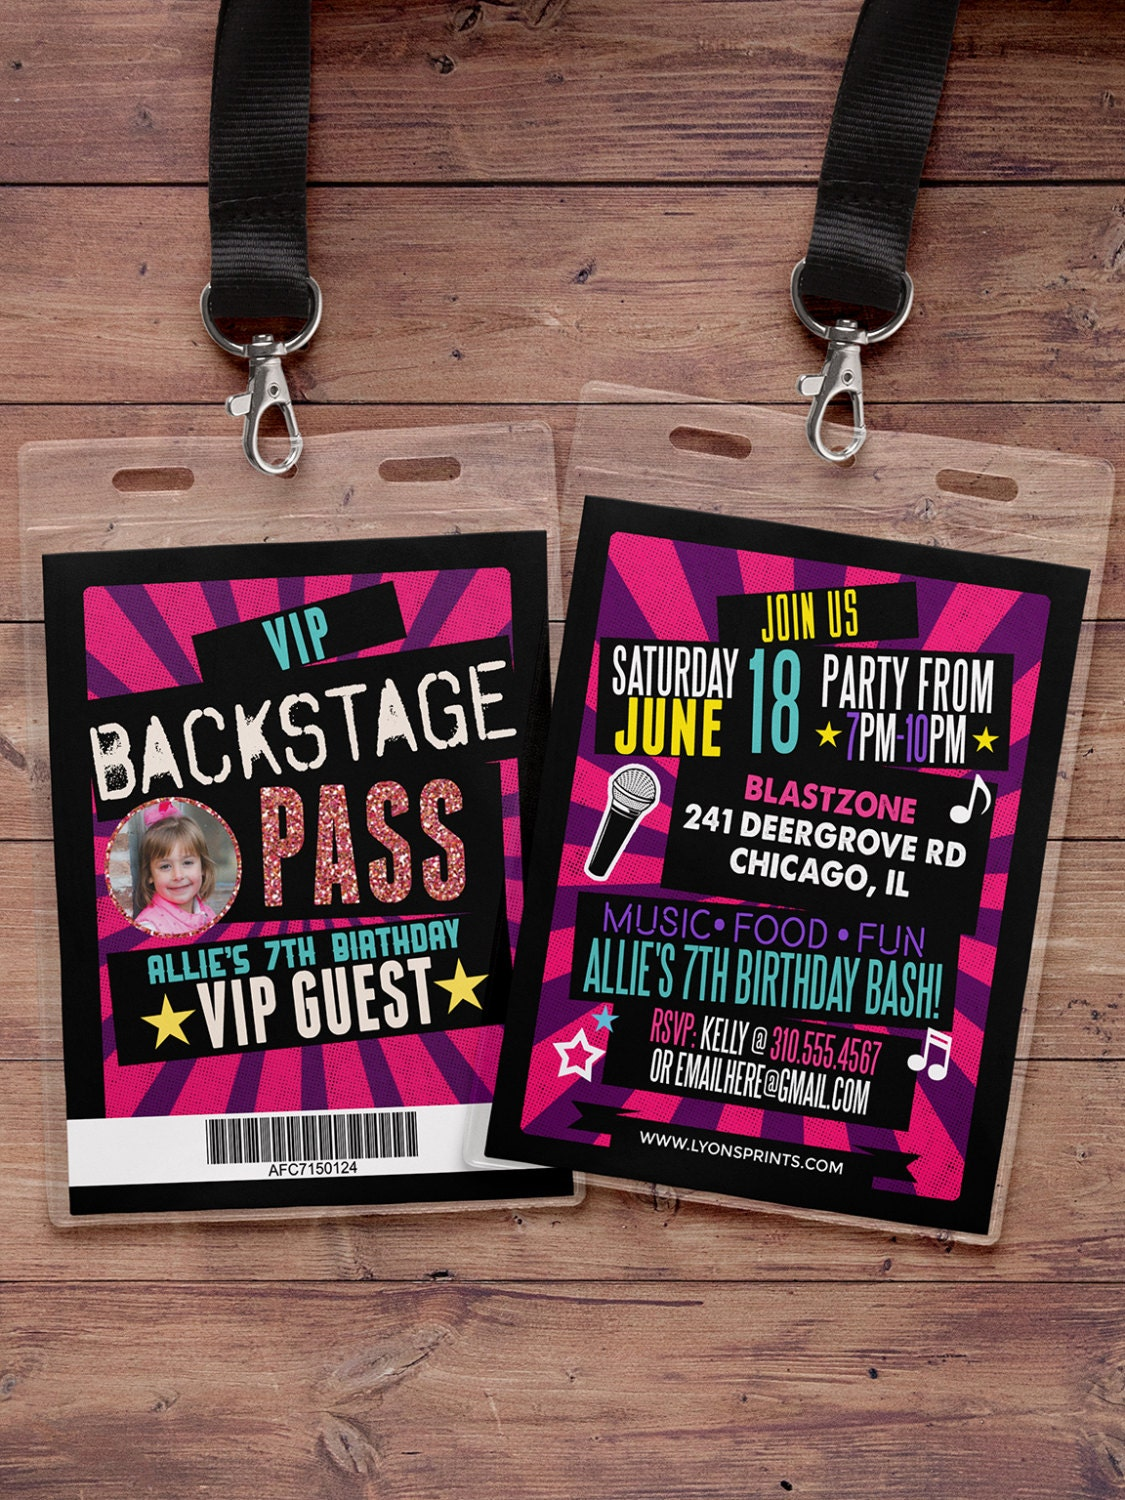 Vip Pass birthday invita...